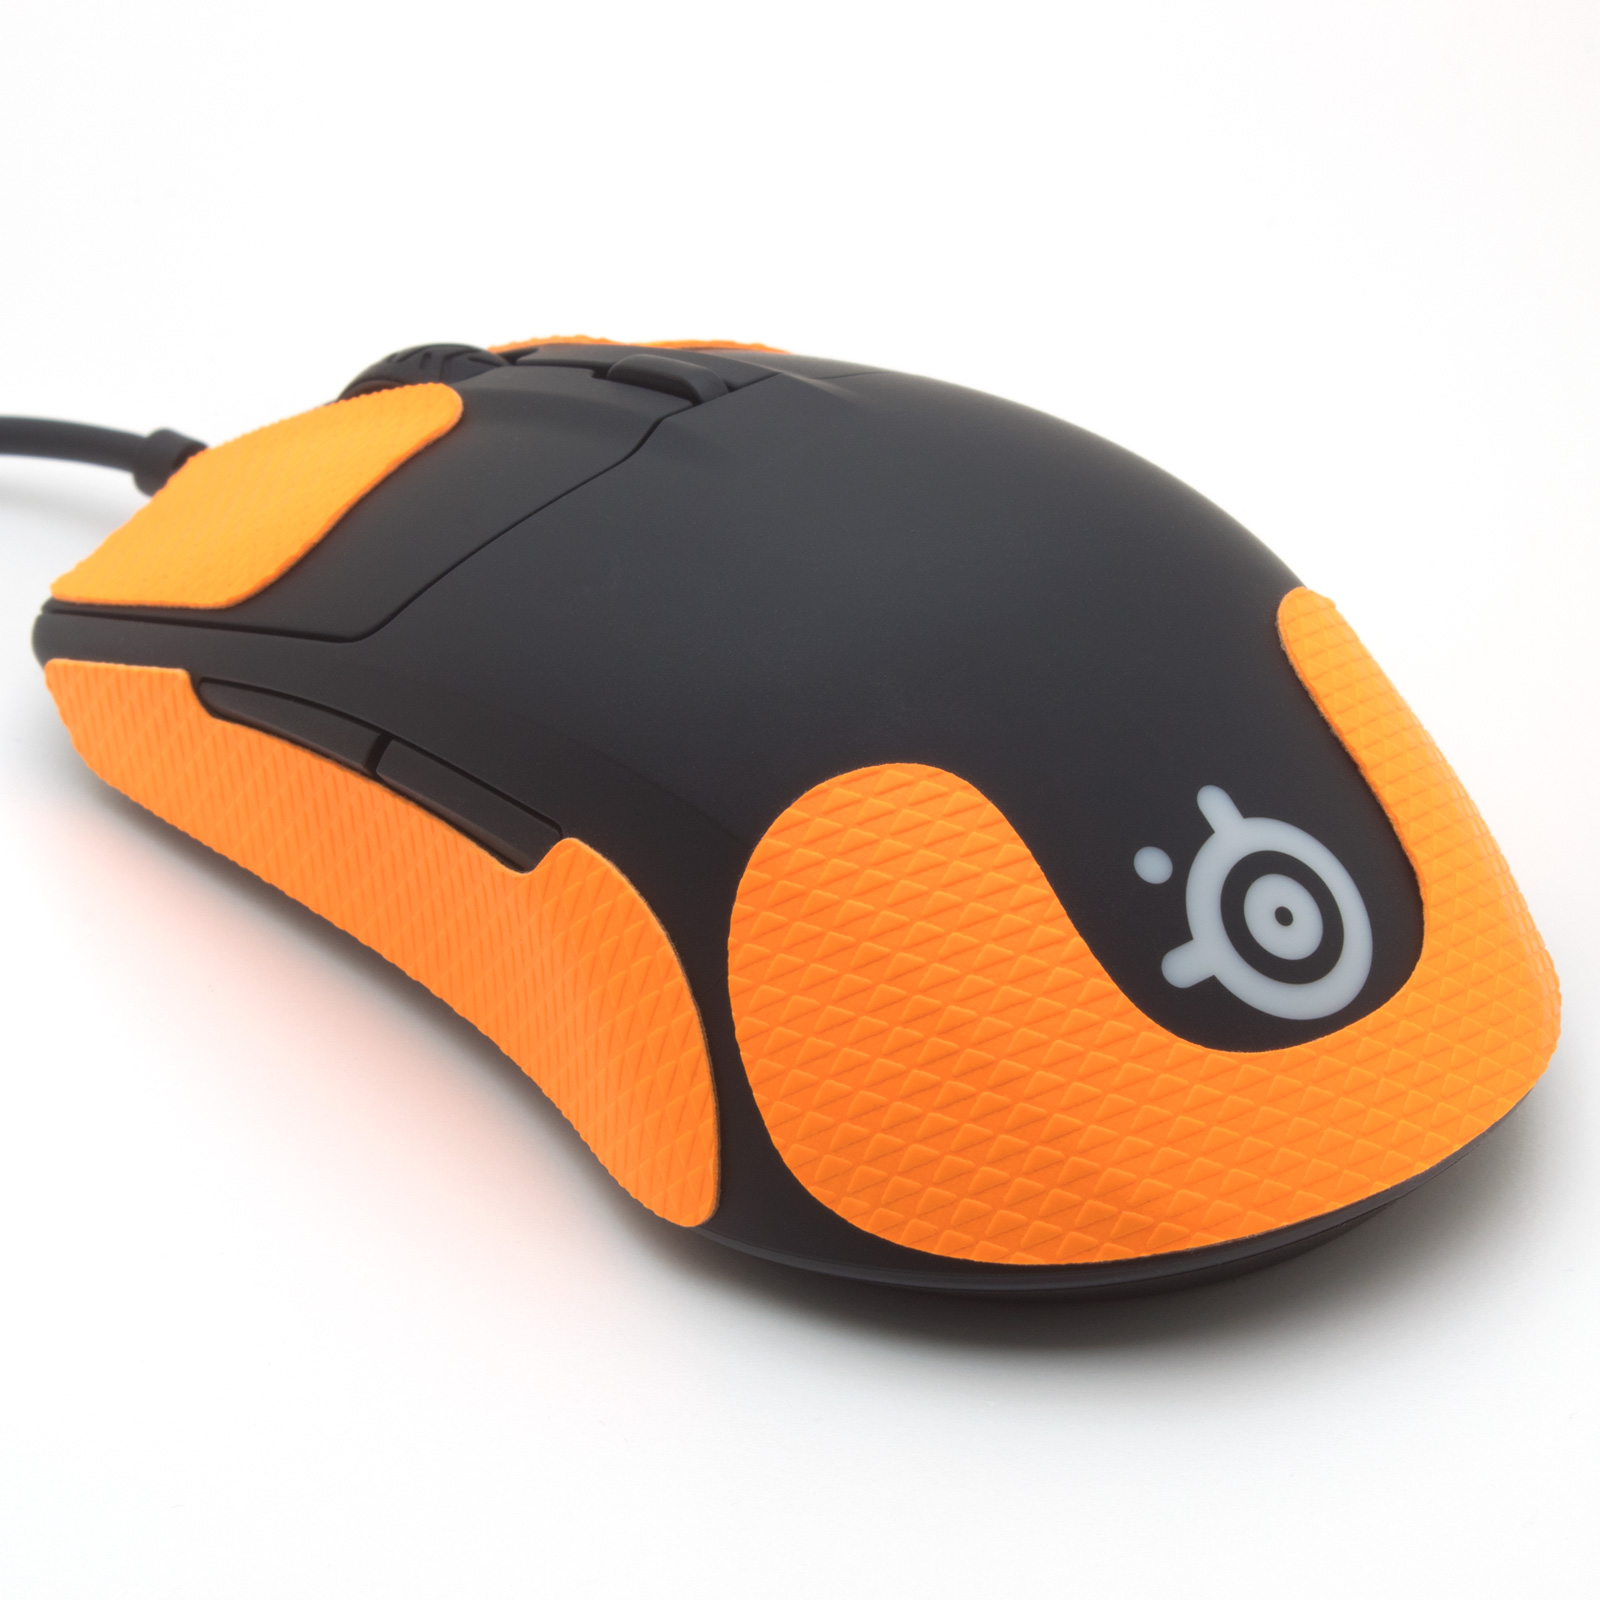 Mouse grip tape for SteelSeries Rival 3 from the brand TrueGrip - back view